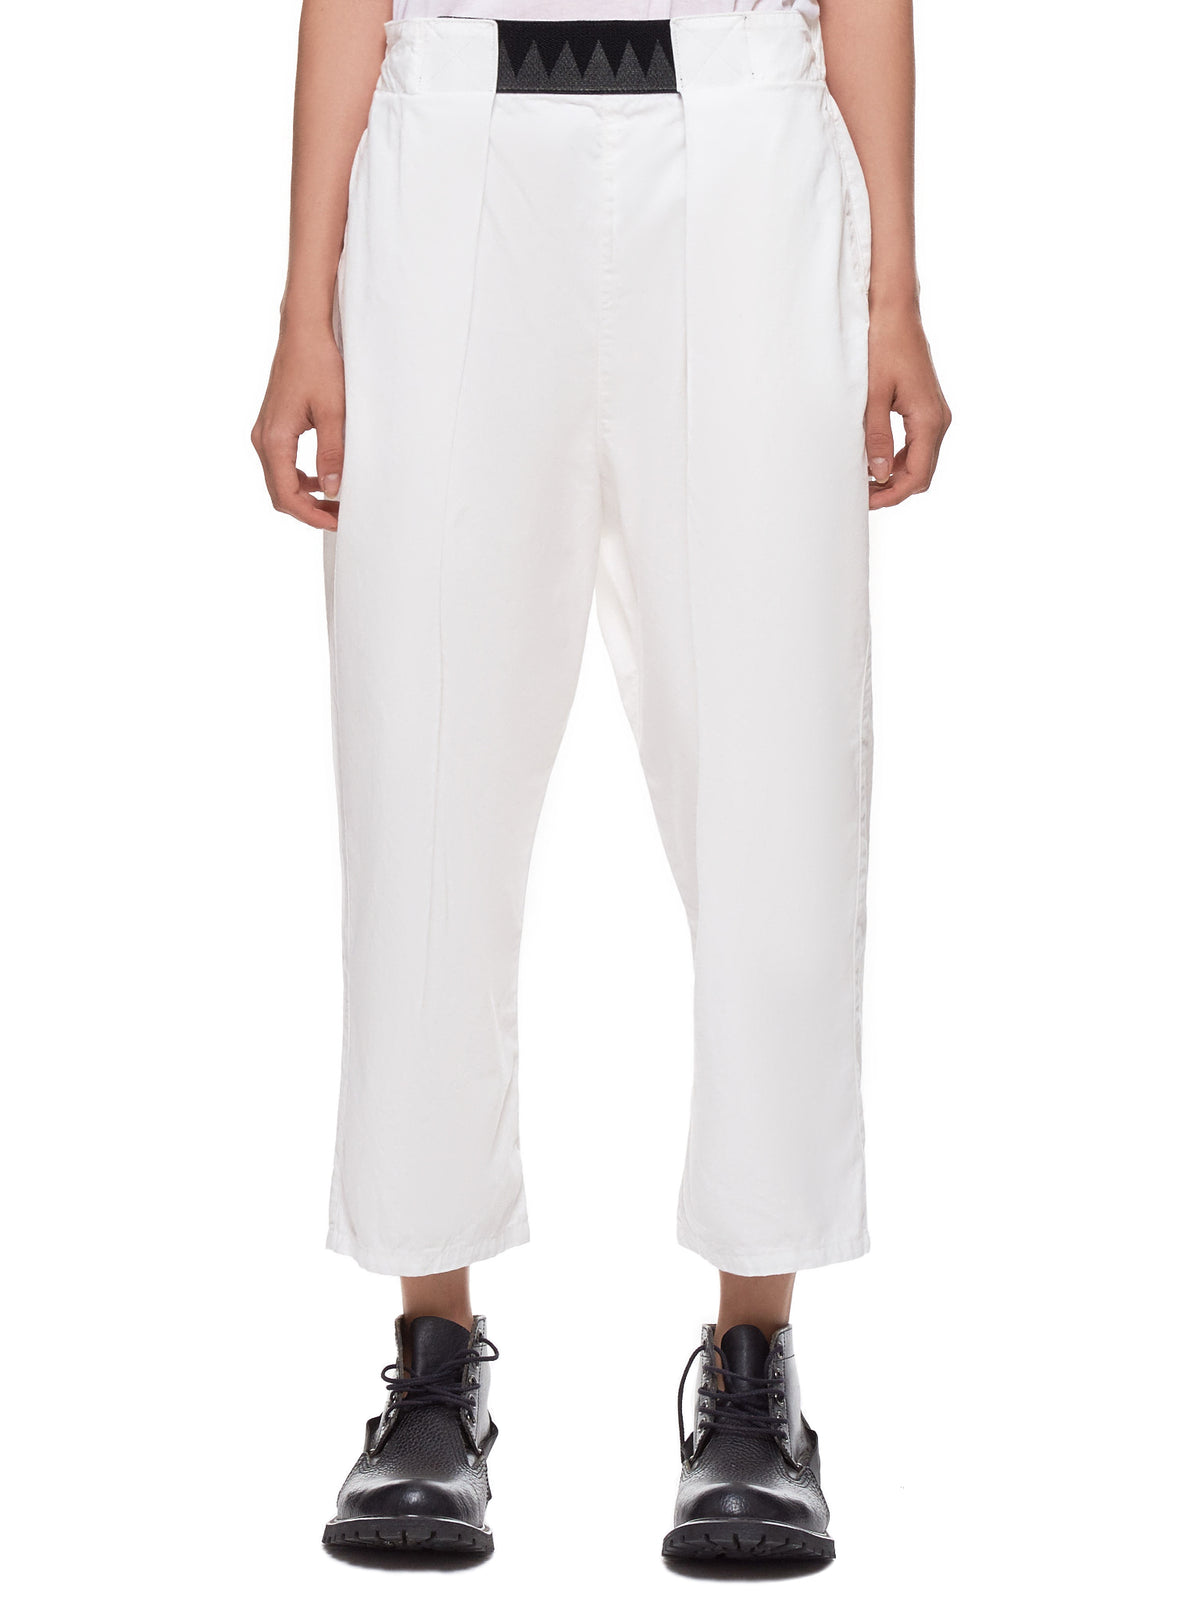 Cropped Trousers (K1903LP066-WHITE)